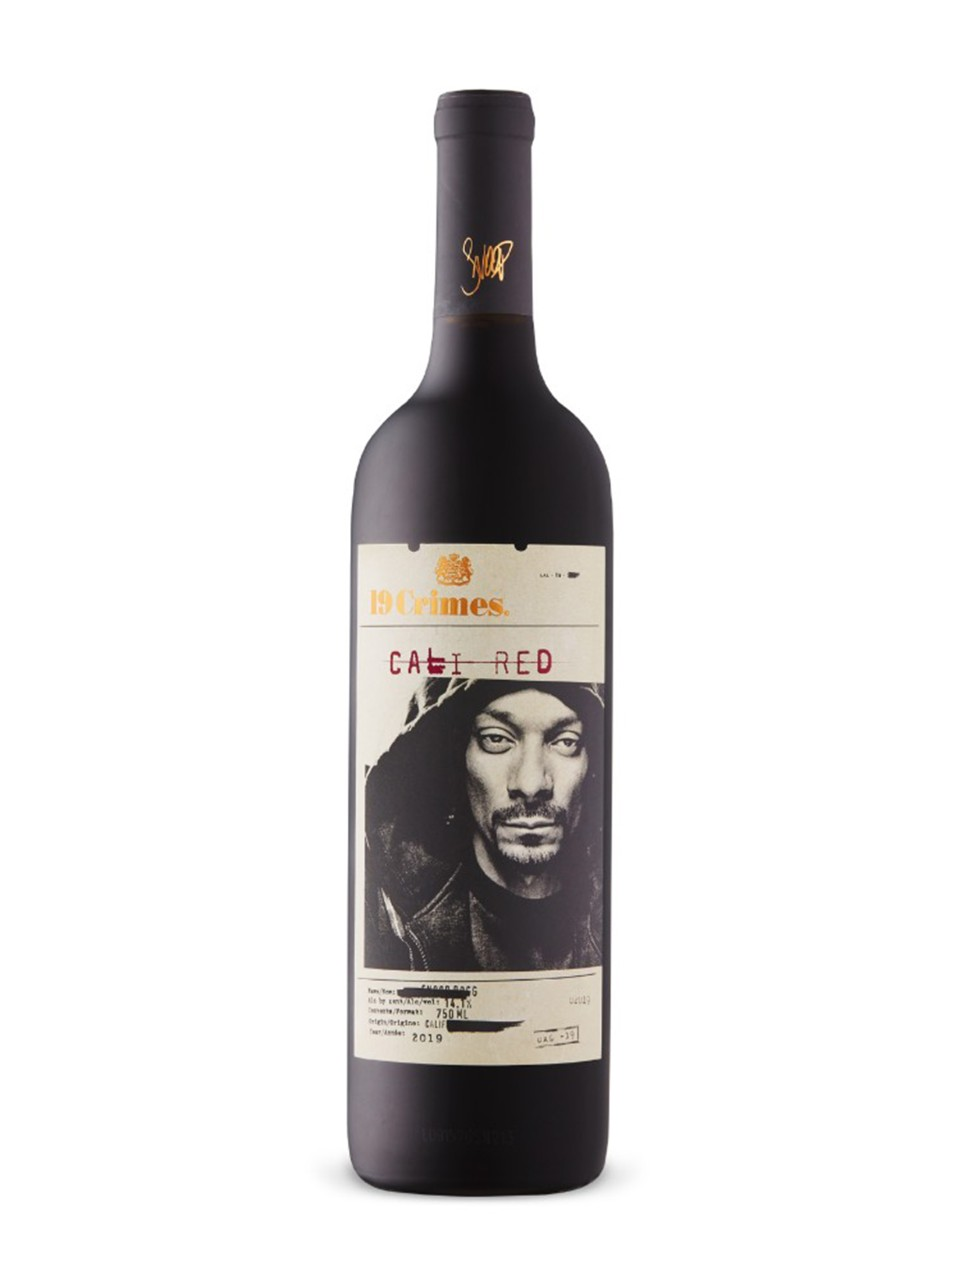 19 Crimes Snoop Dogg Cali Red from LCBO